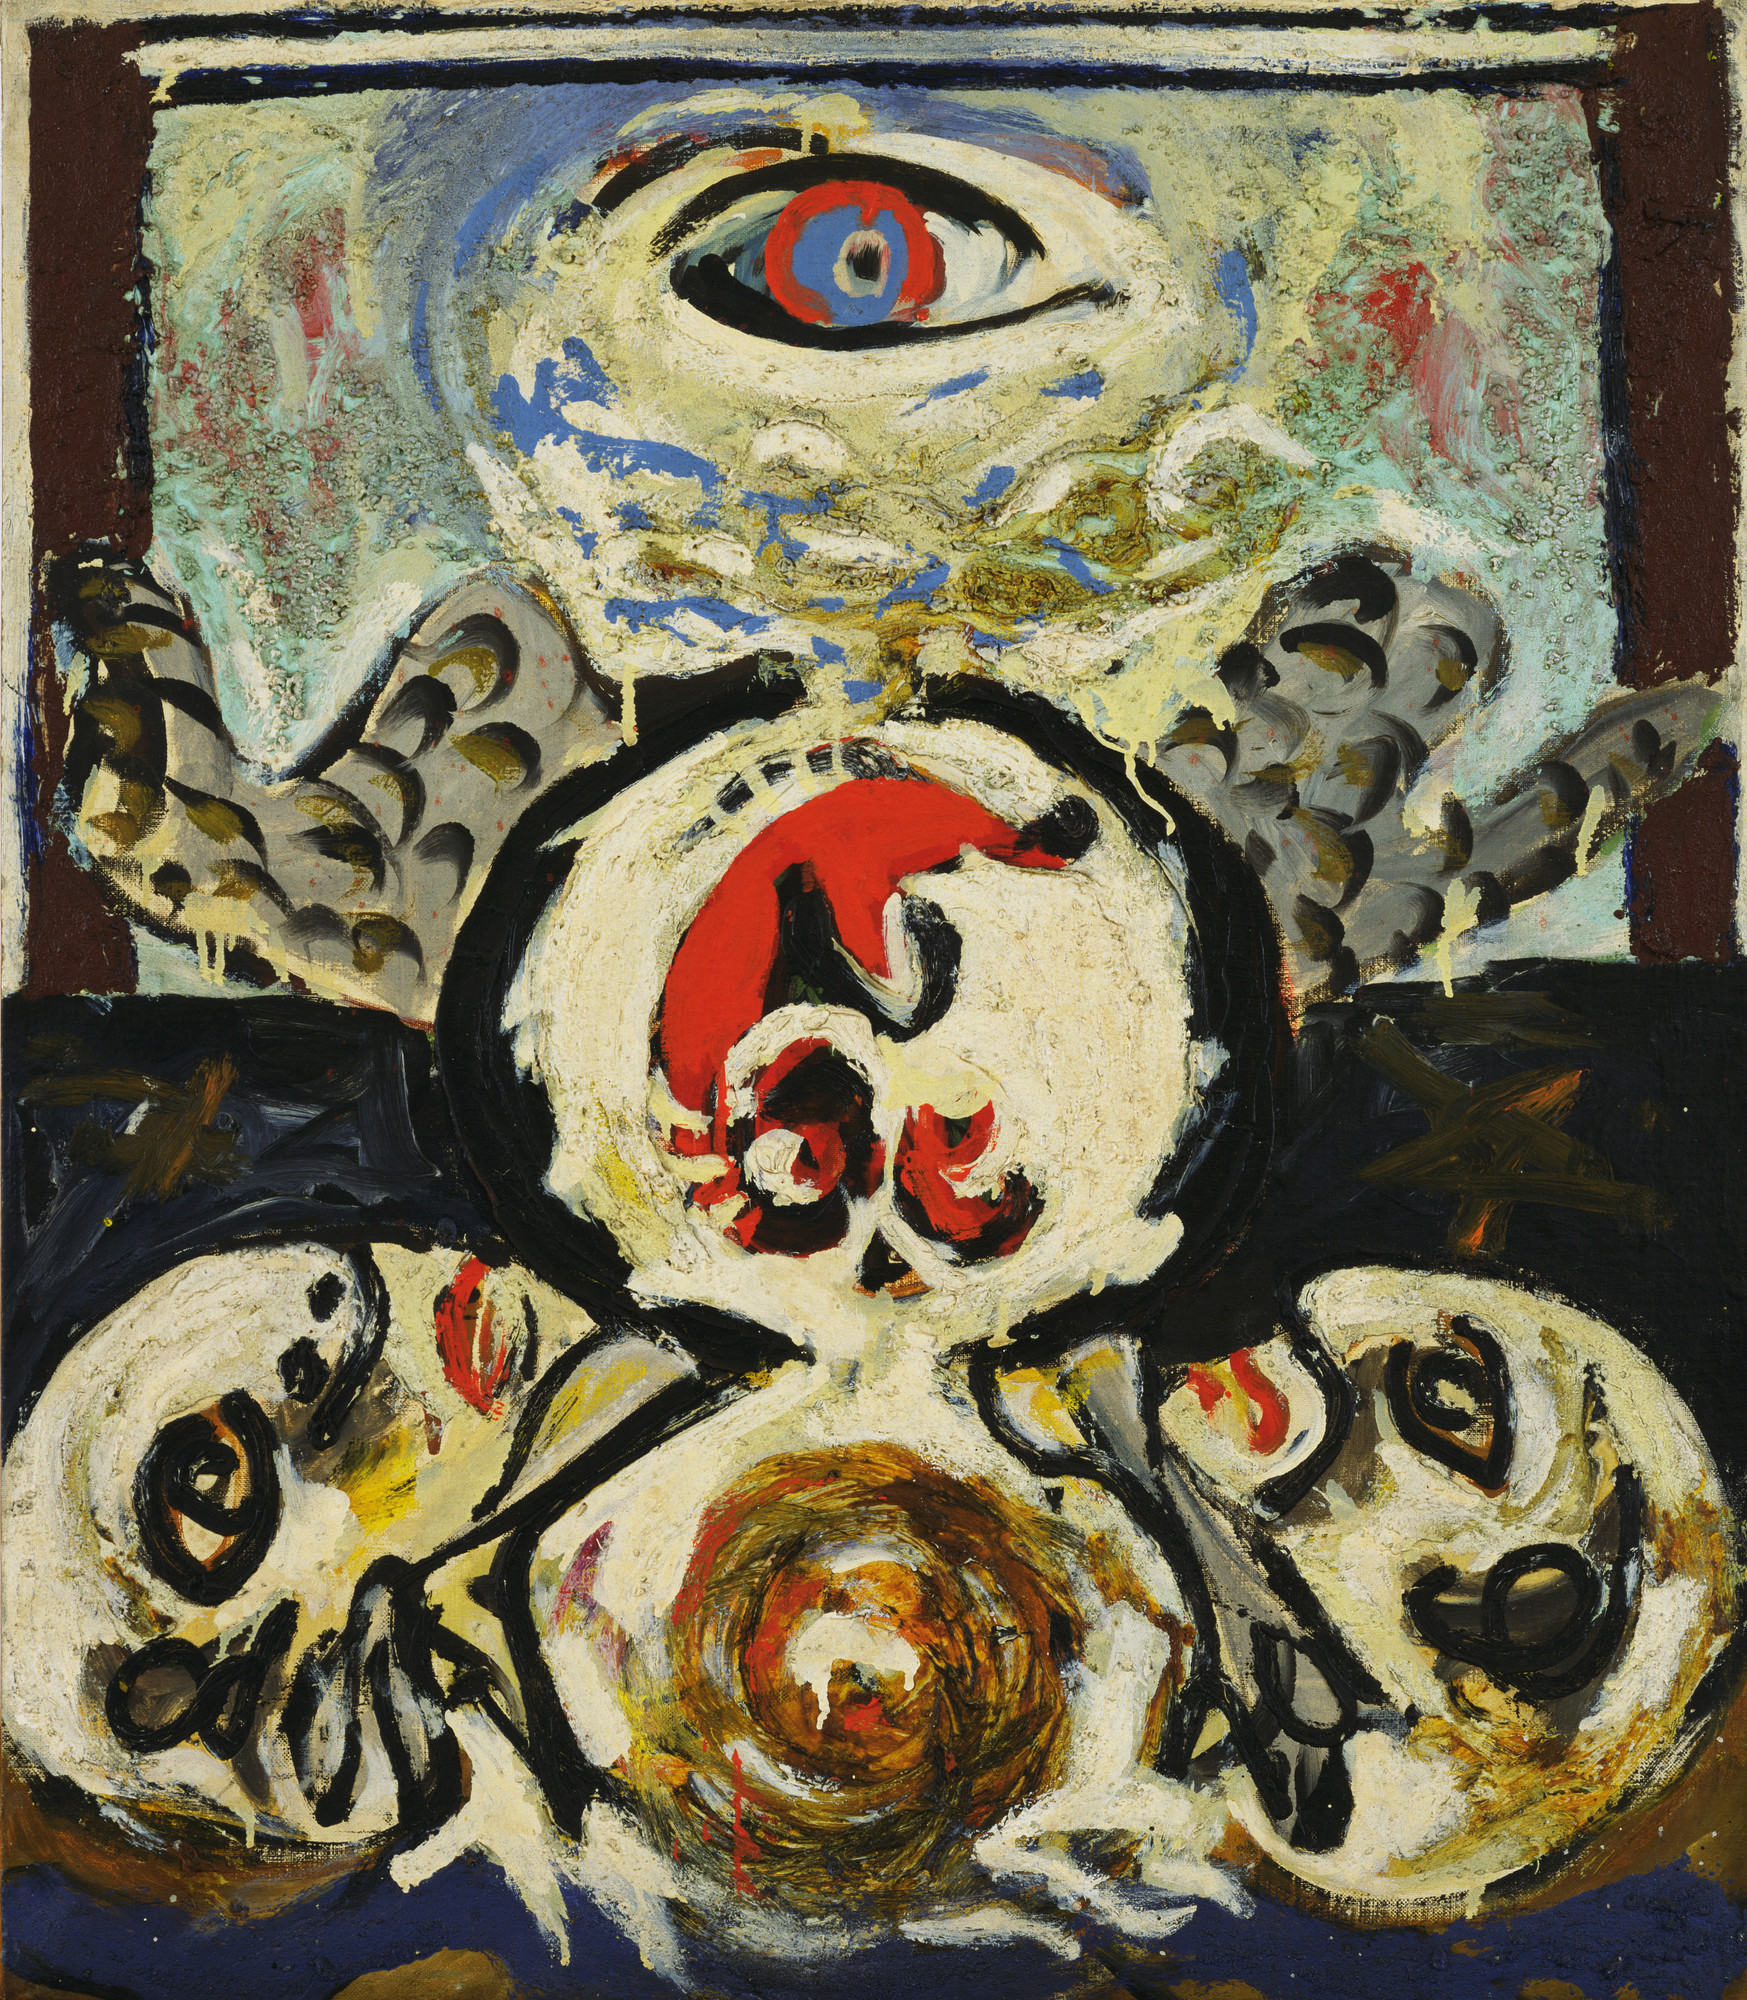 Jackson Pollock. Bird. c. 1938–41. Oil and sand on canvas, 27 3/4 × 24 1/4ʺ (70.5 × 61.6 cm). Gift of Lee Krasner in memory of Jackson Pollock. © 2016 Pollock-Krasner Foundation / Artists Rights Society (ARS), New York